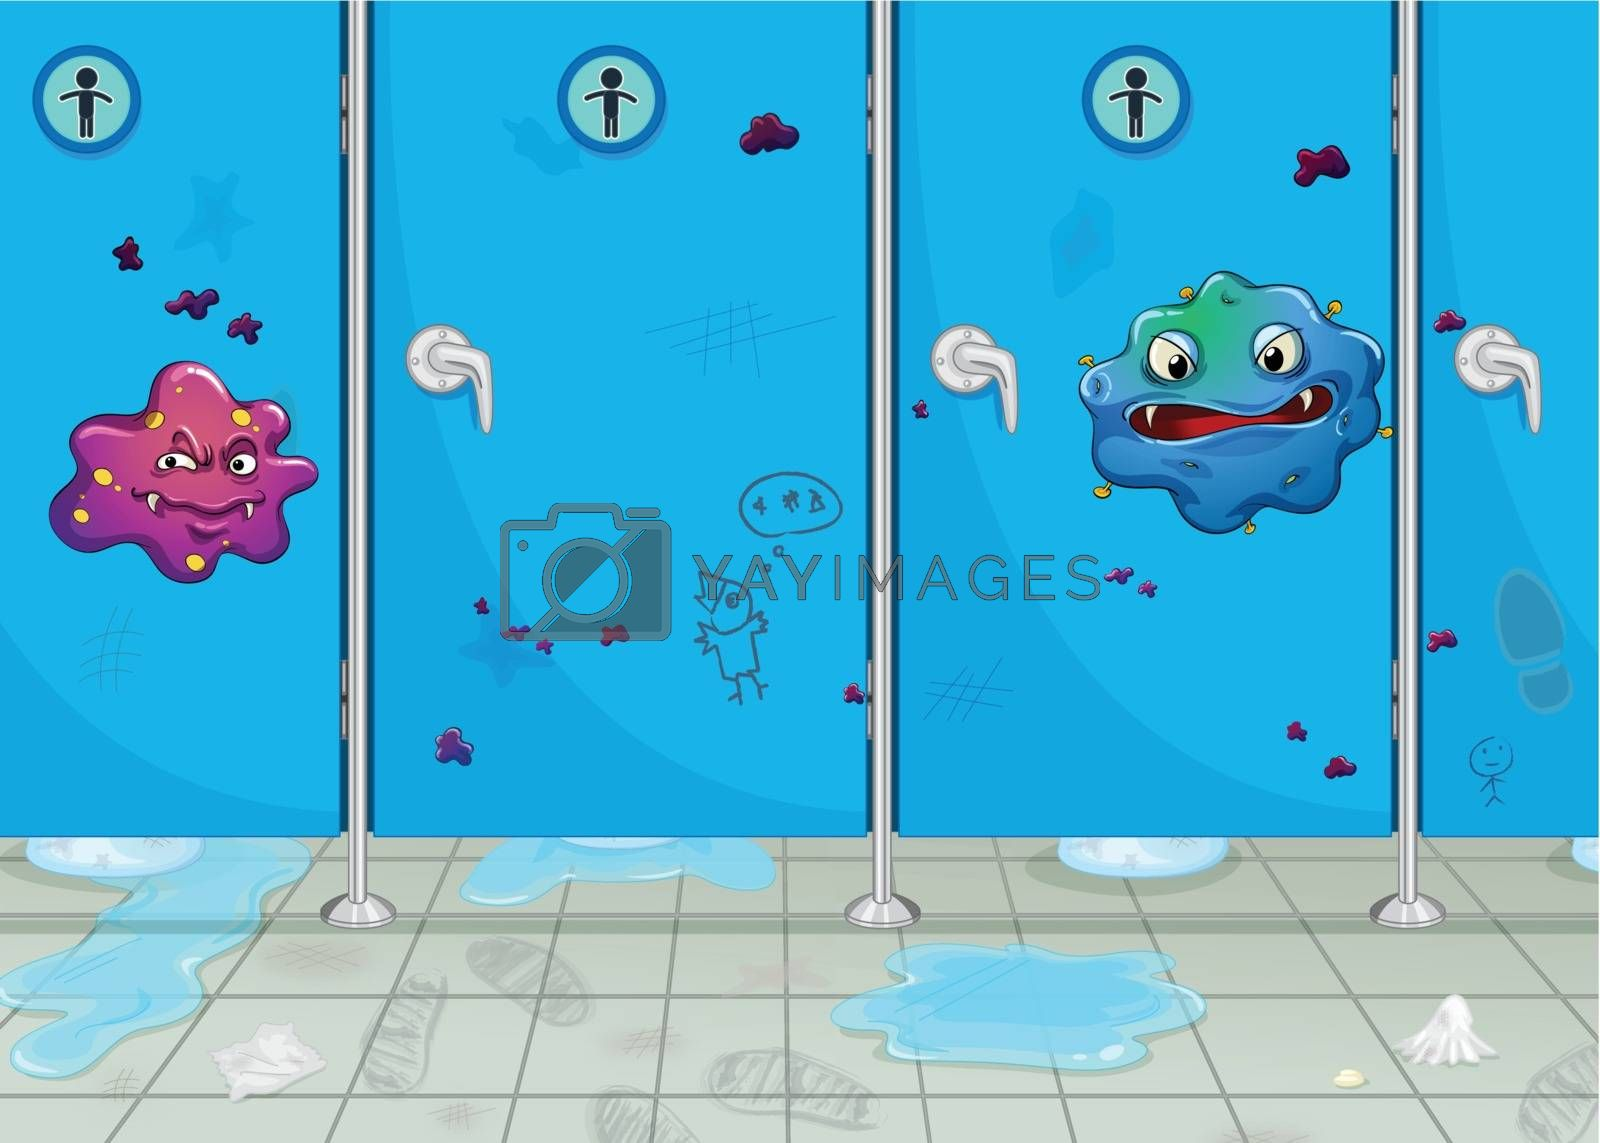 Royalty free image of doors of wash-room and a monster by iimages